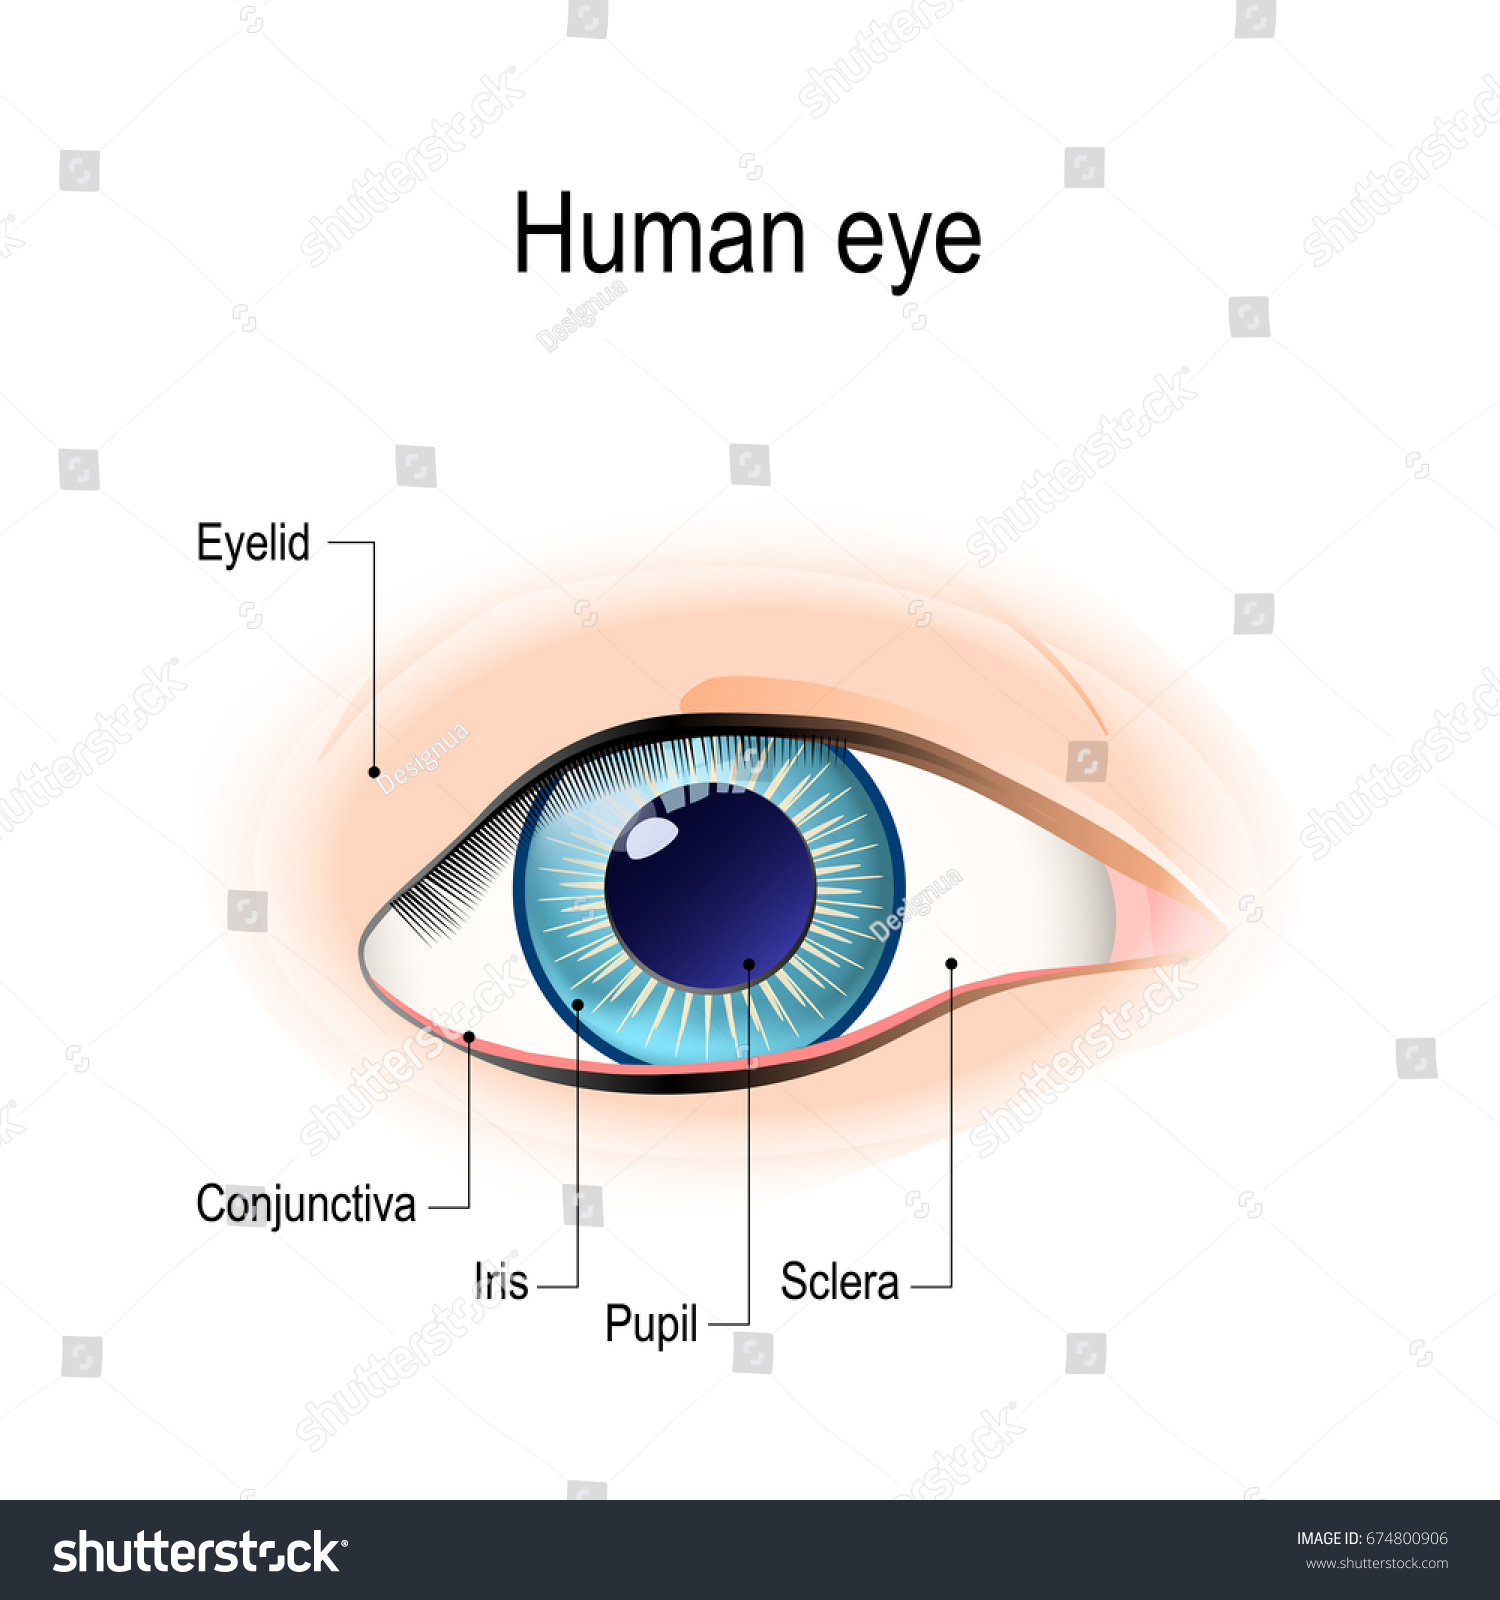 Anatomy Human Eye Front View External Stock Vector HD (Royalty Free ...